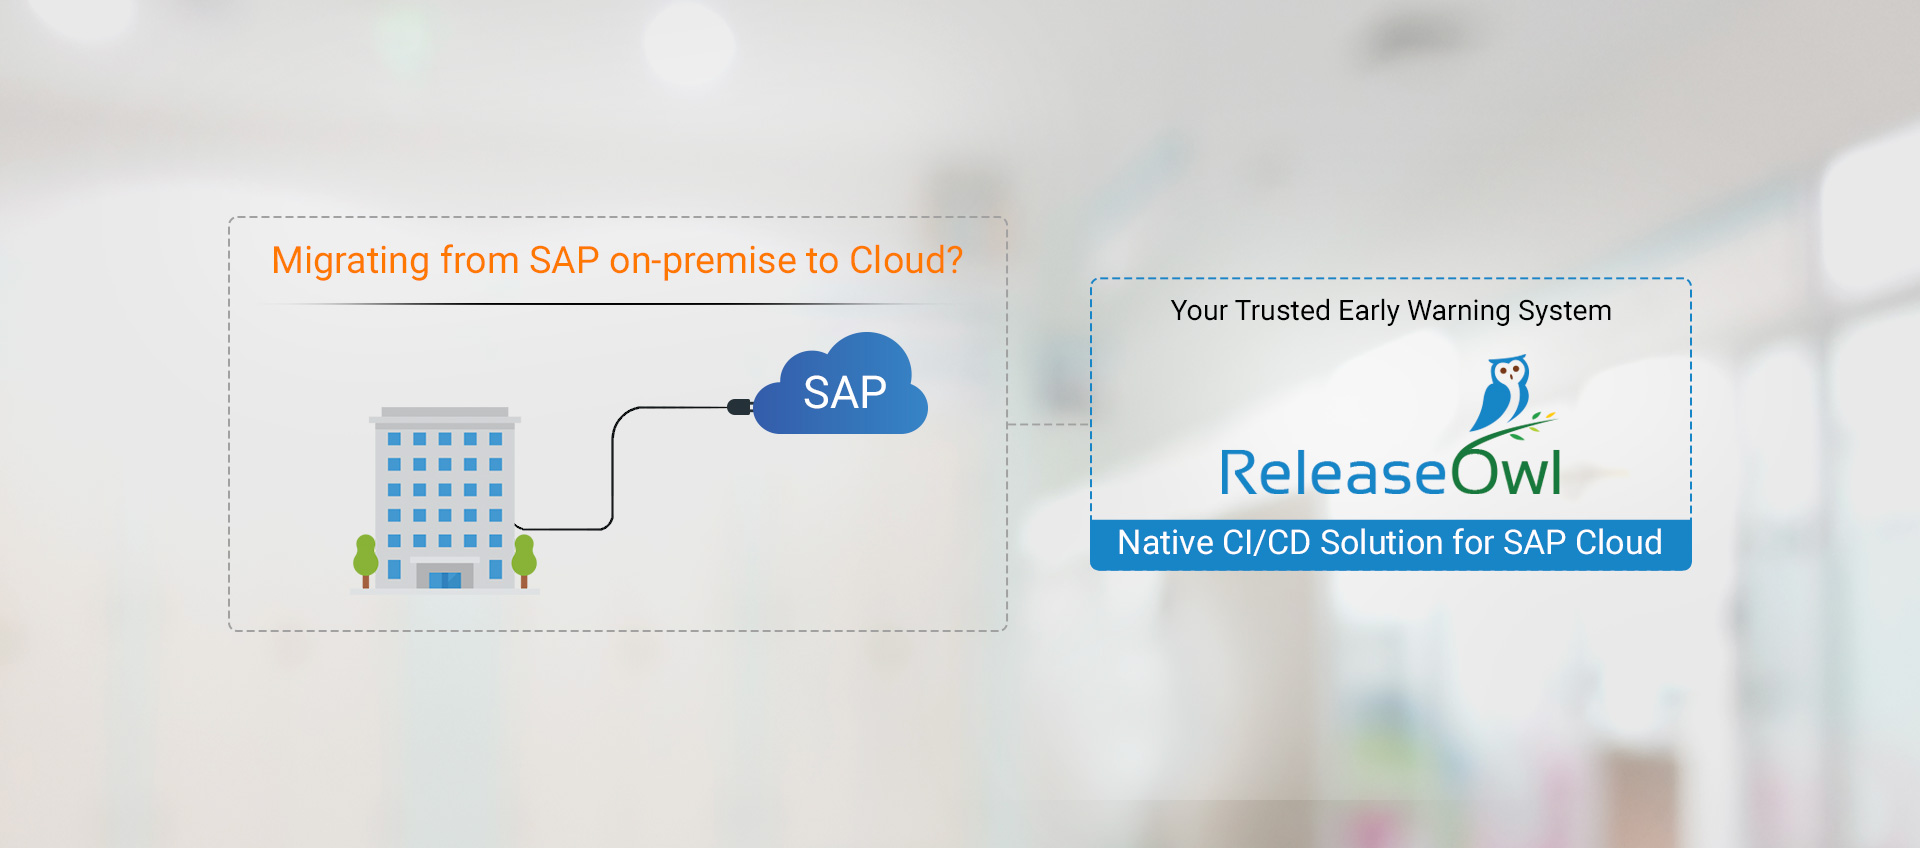 Migrating from SAP on premise to Cloud